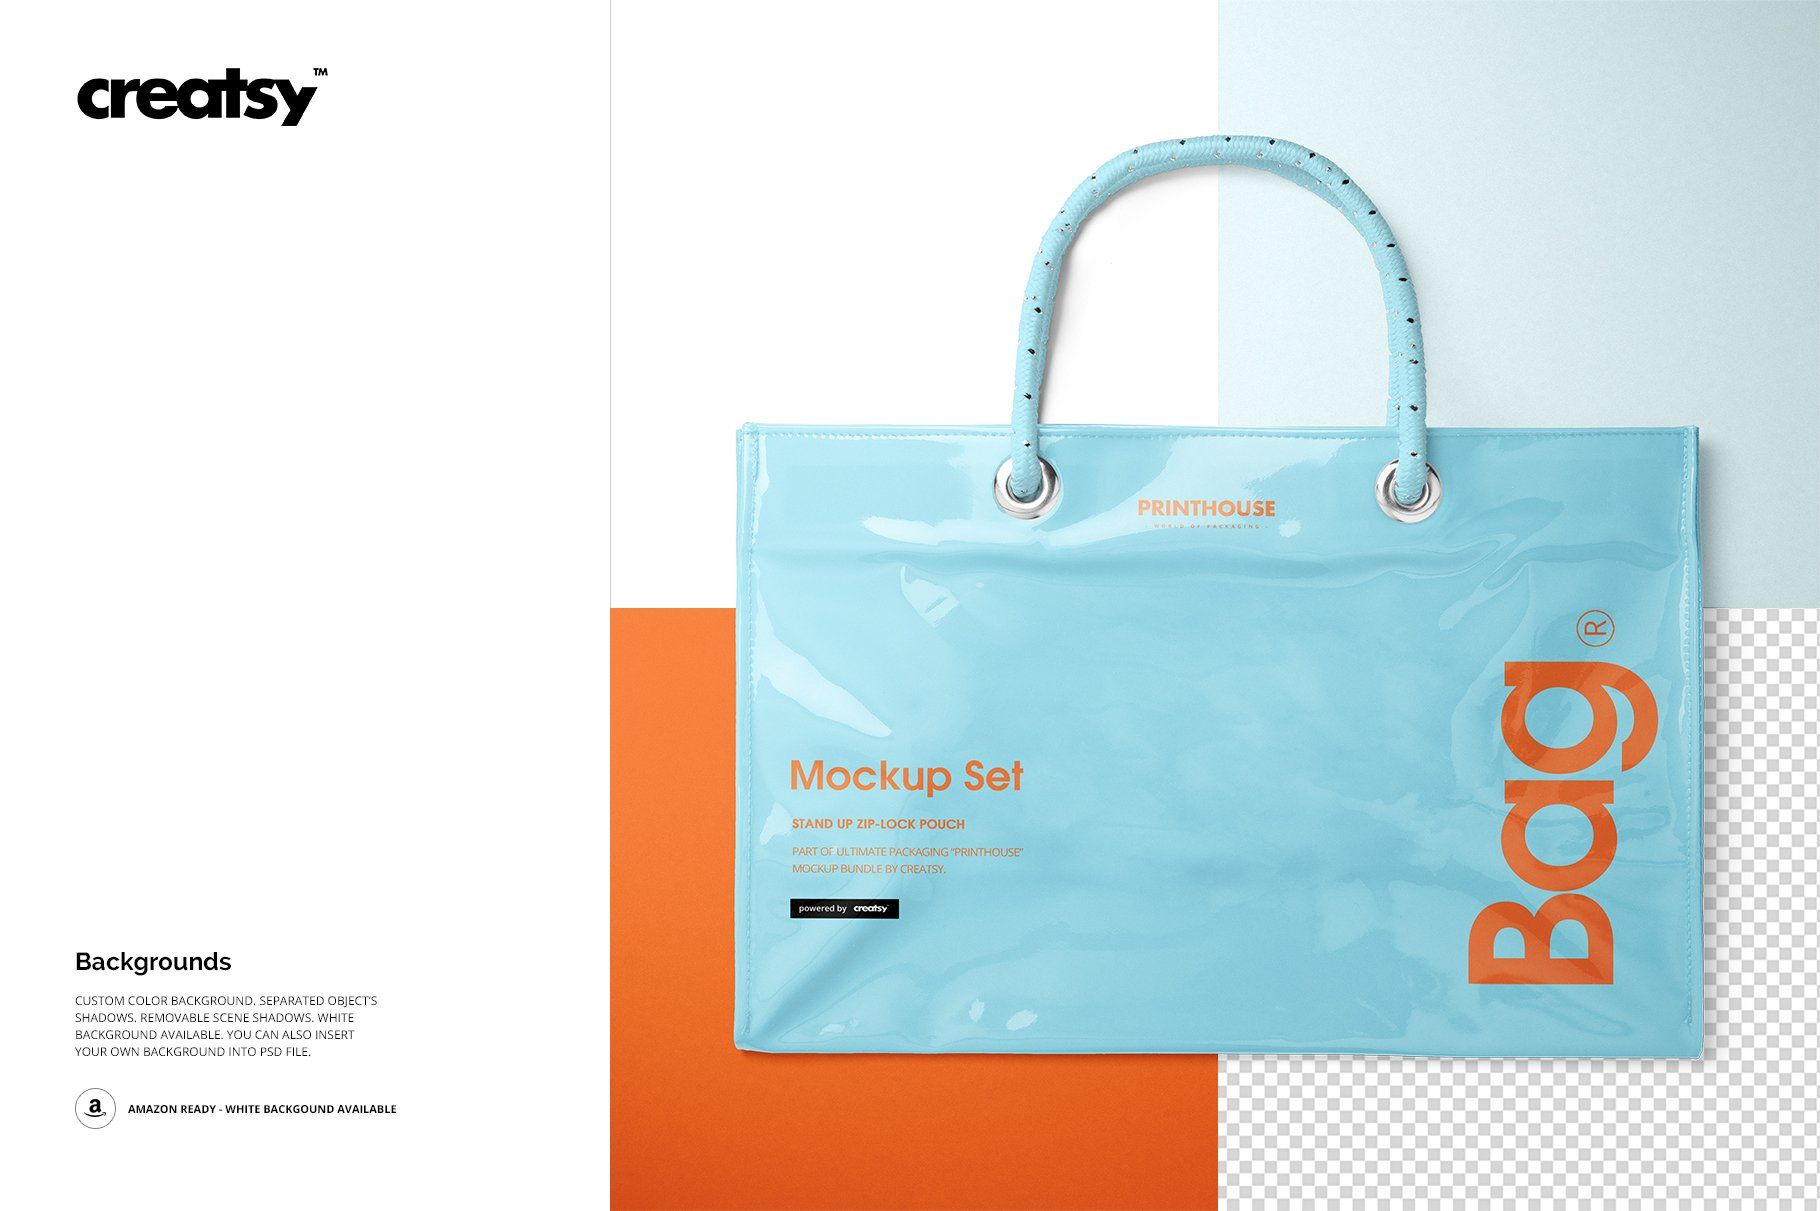 Download Vinyl Pvc Reusable Tote Bag Mockups Bag Mockup Bags Tote Bag